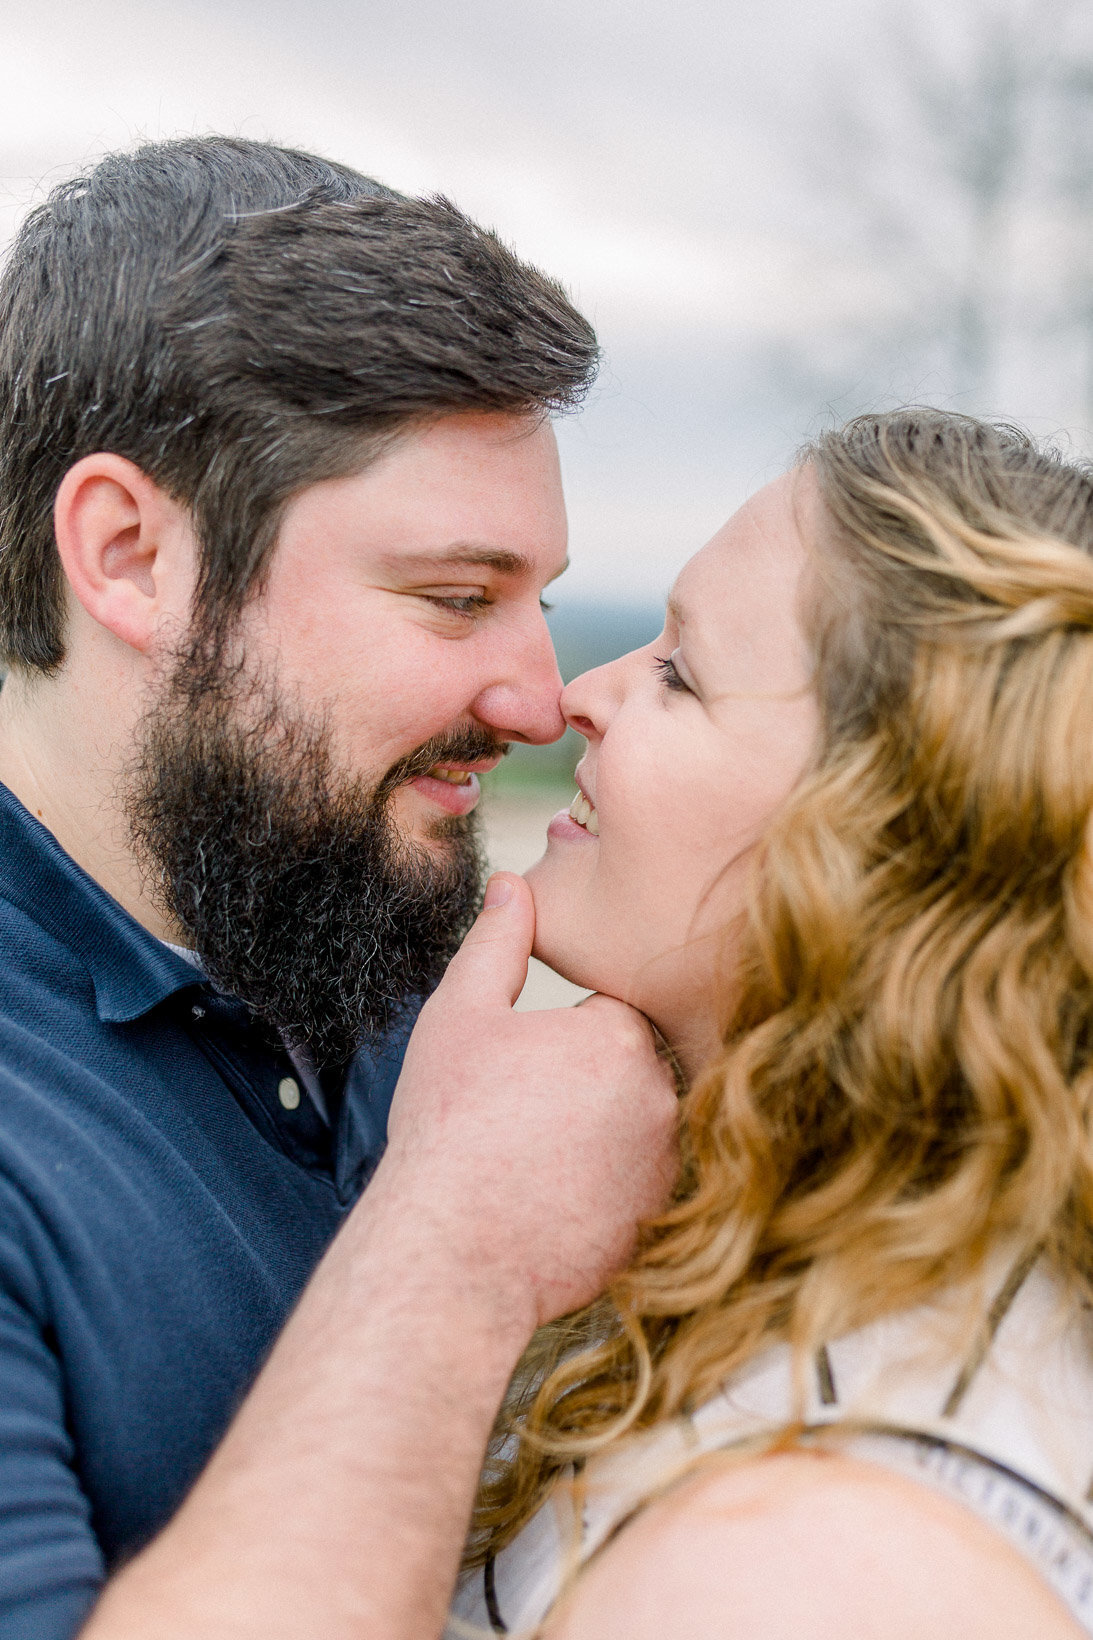 Intimate moment between couple captured by Staci Addison Photography